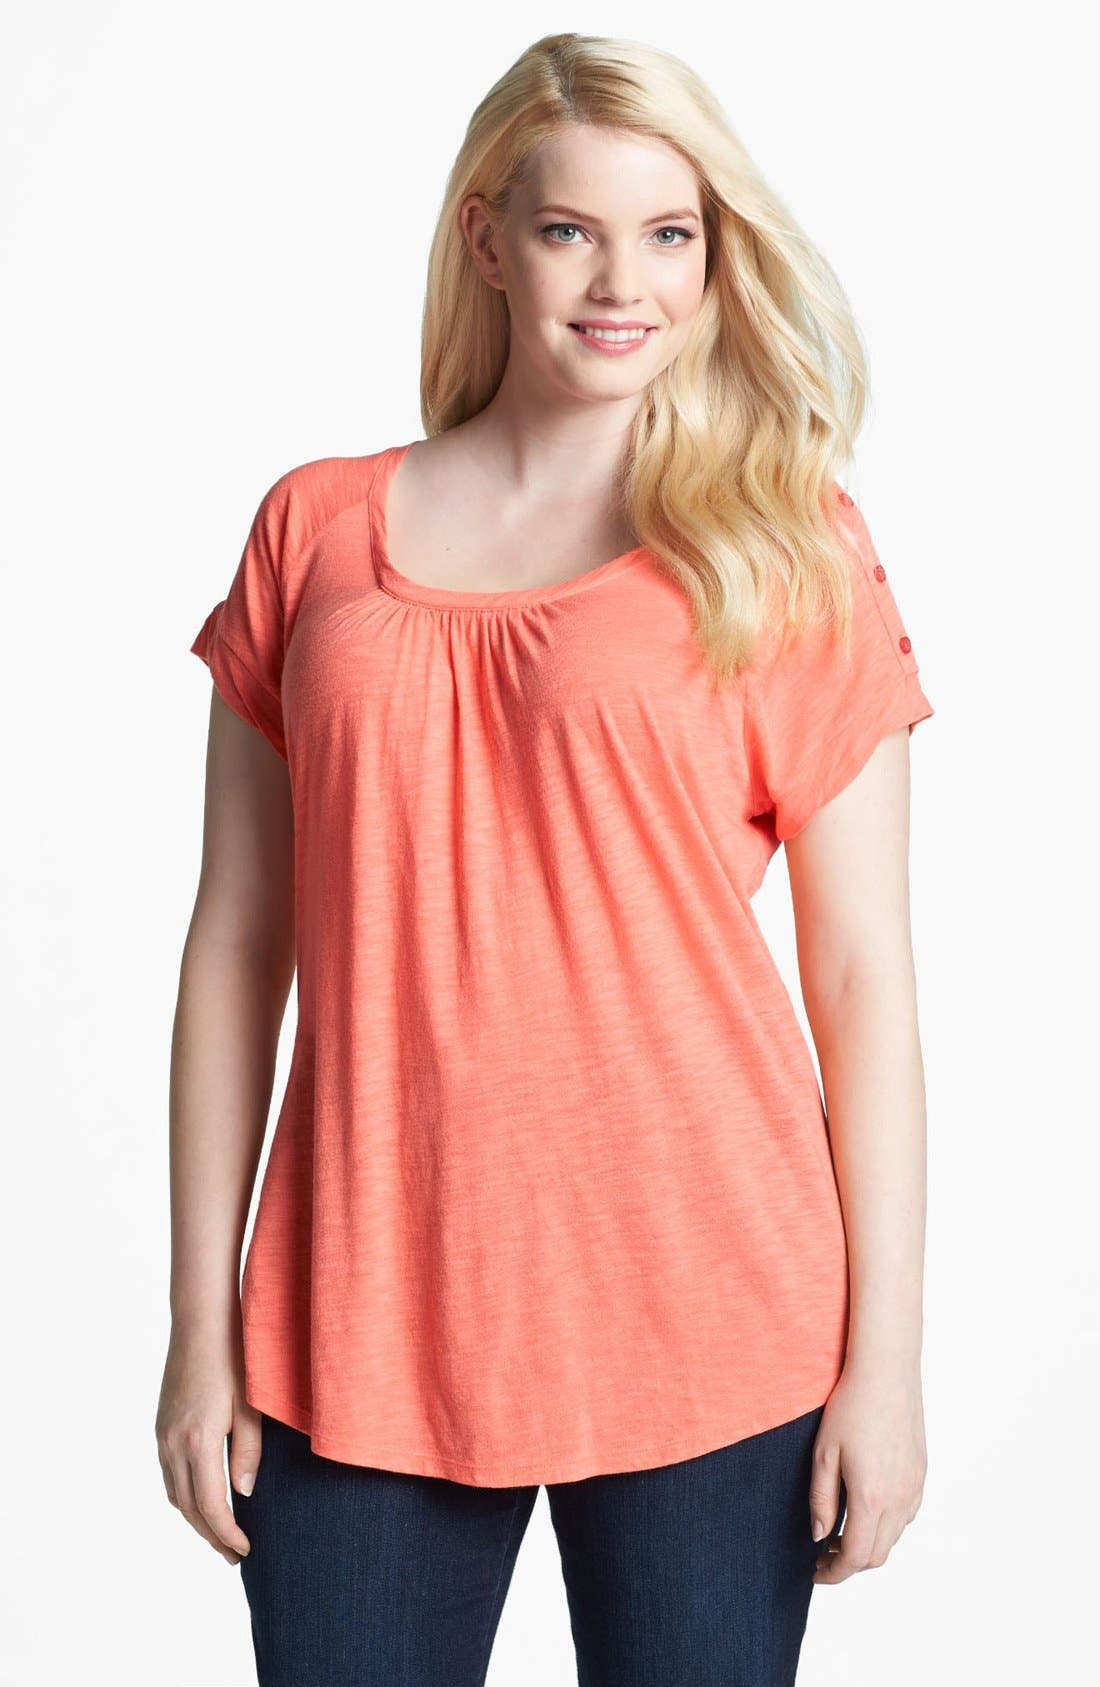 Main Image - Lucky Brand 'Alanna' Button Detail Top (Plus)